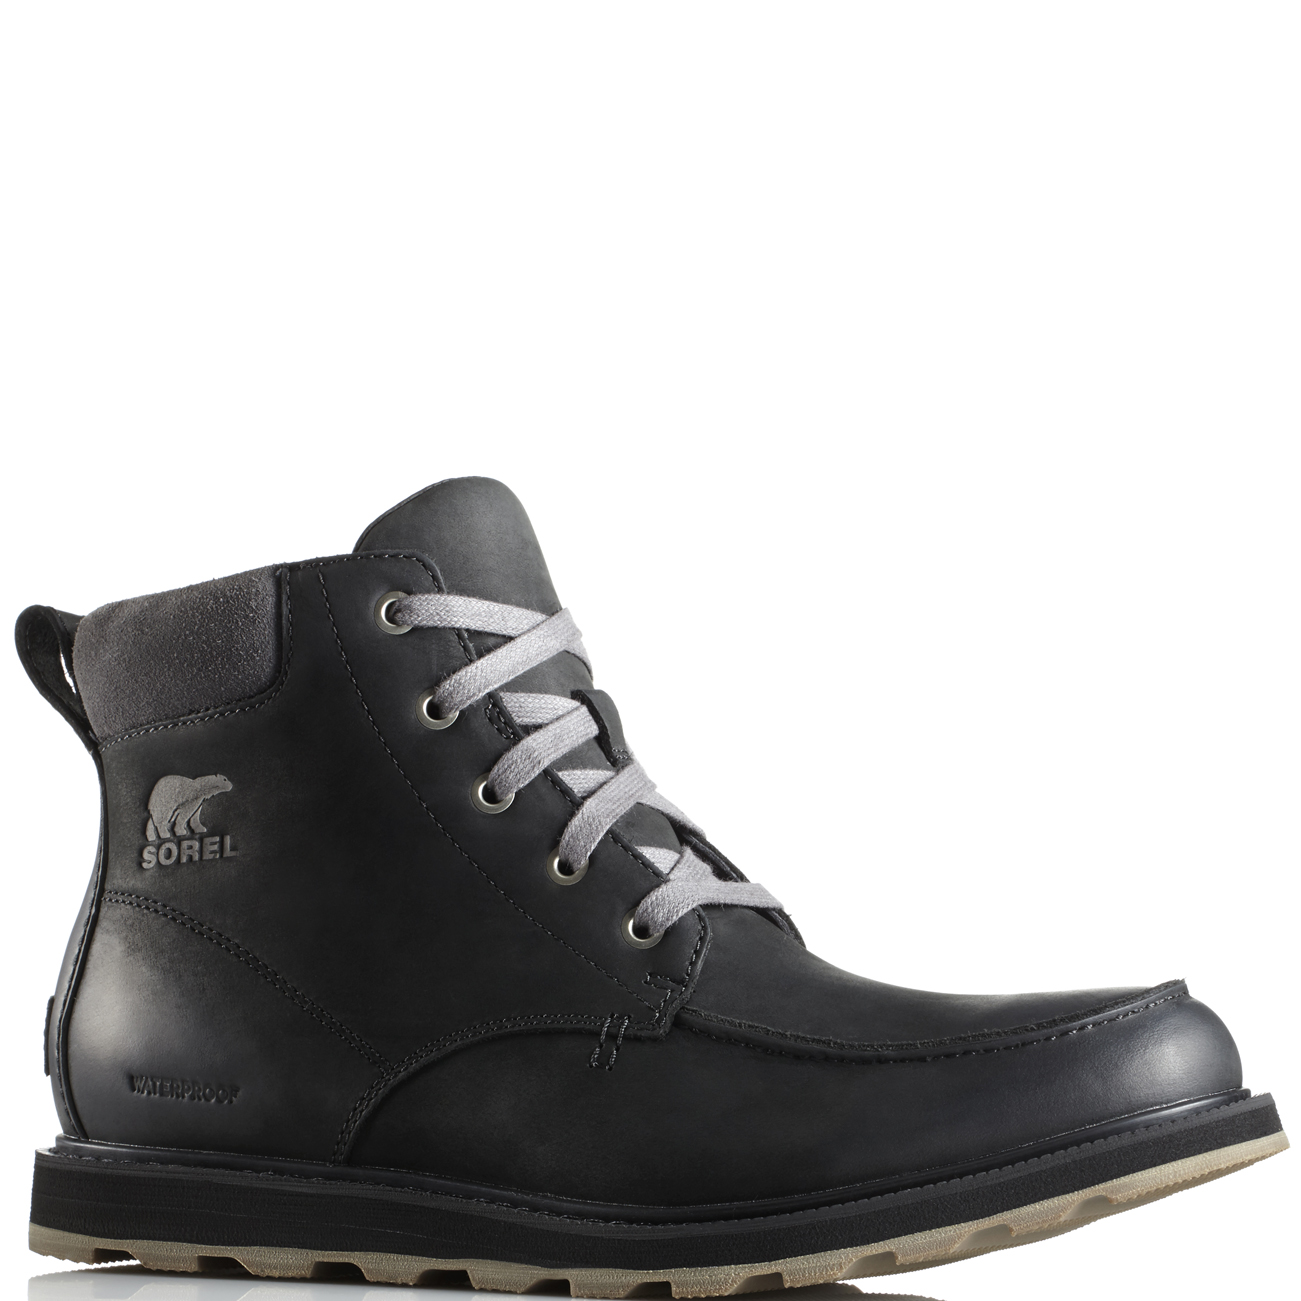 Sorel Moc toe Waterproof